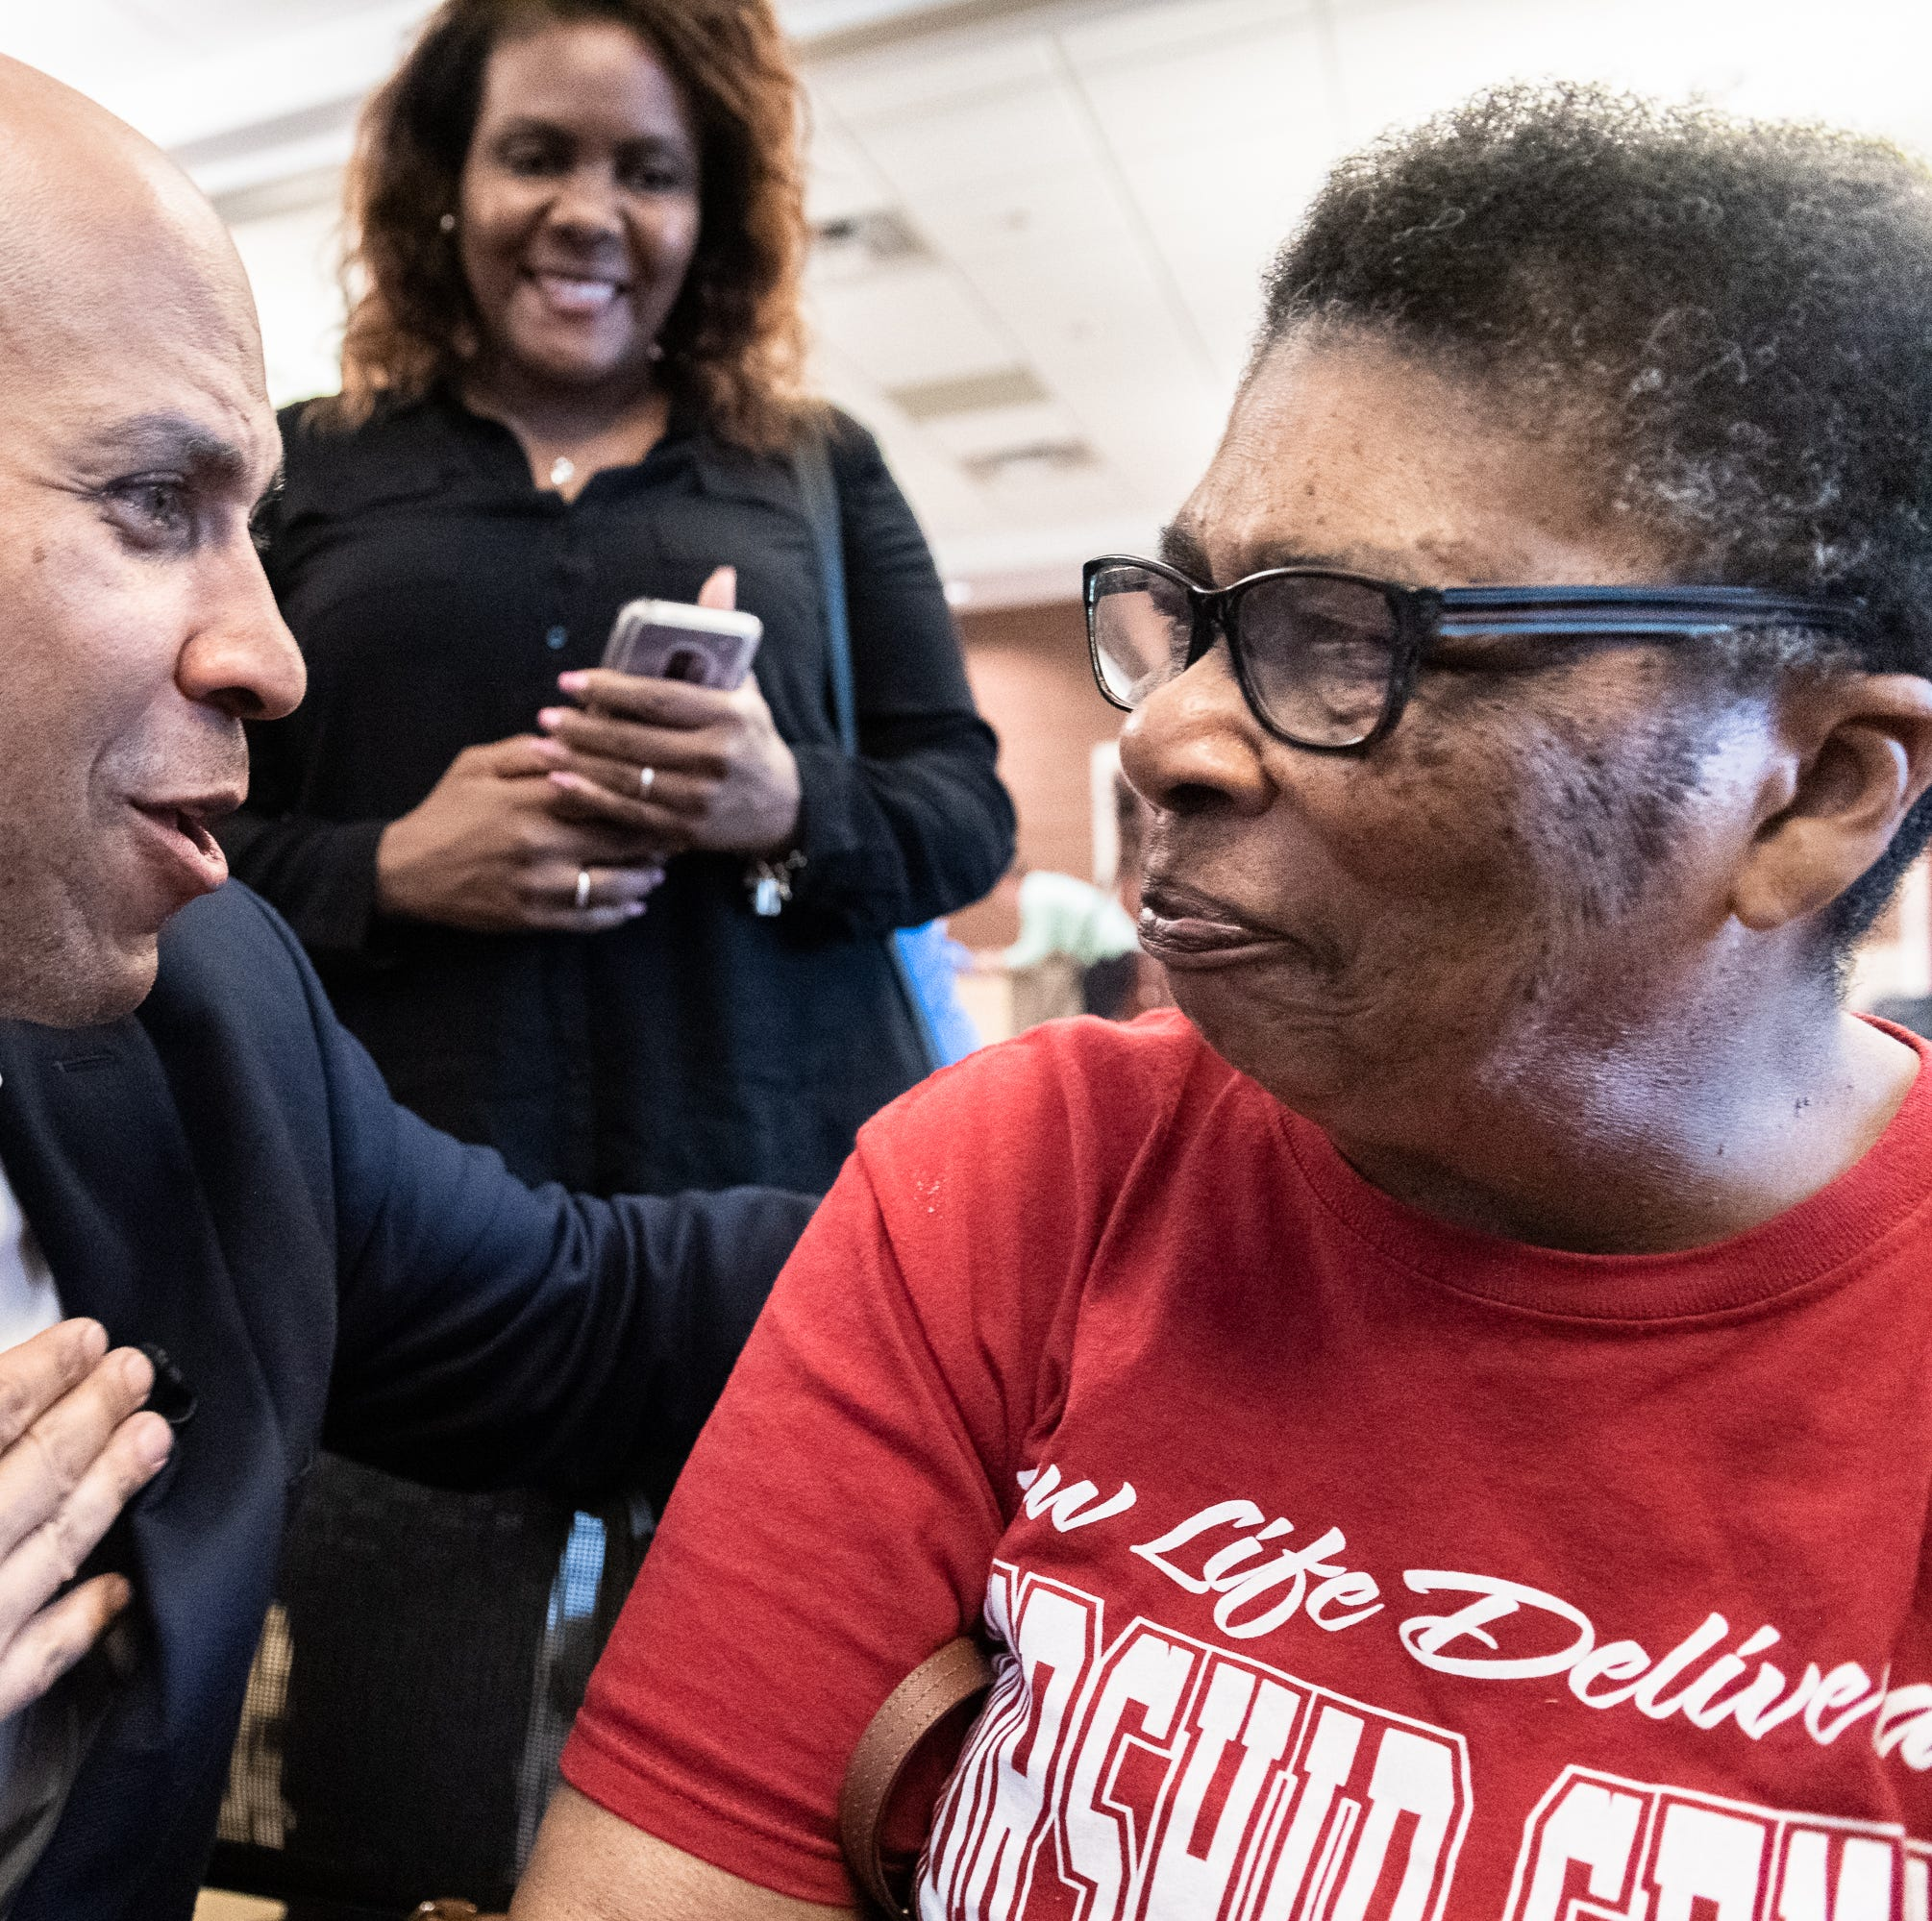 """Cory Booker, U.S senator from New Jersey, and a 2020 democratic presidential candidate thanks Shirley Gray, 78, of Spartanburg, after she presented him with a giclee print made by her late husband, Johnnie Lee Gray titled """"A Cloud of Witnesses"""" which depicts the ancestors who fought for civil rights at Senator Booker's rally at the C.C Woodson Community Center in Spartanburg during his visit to the city Thursday, Apr. 25, 2019."""